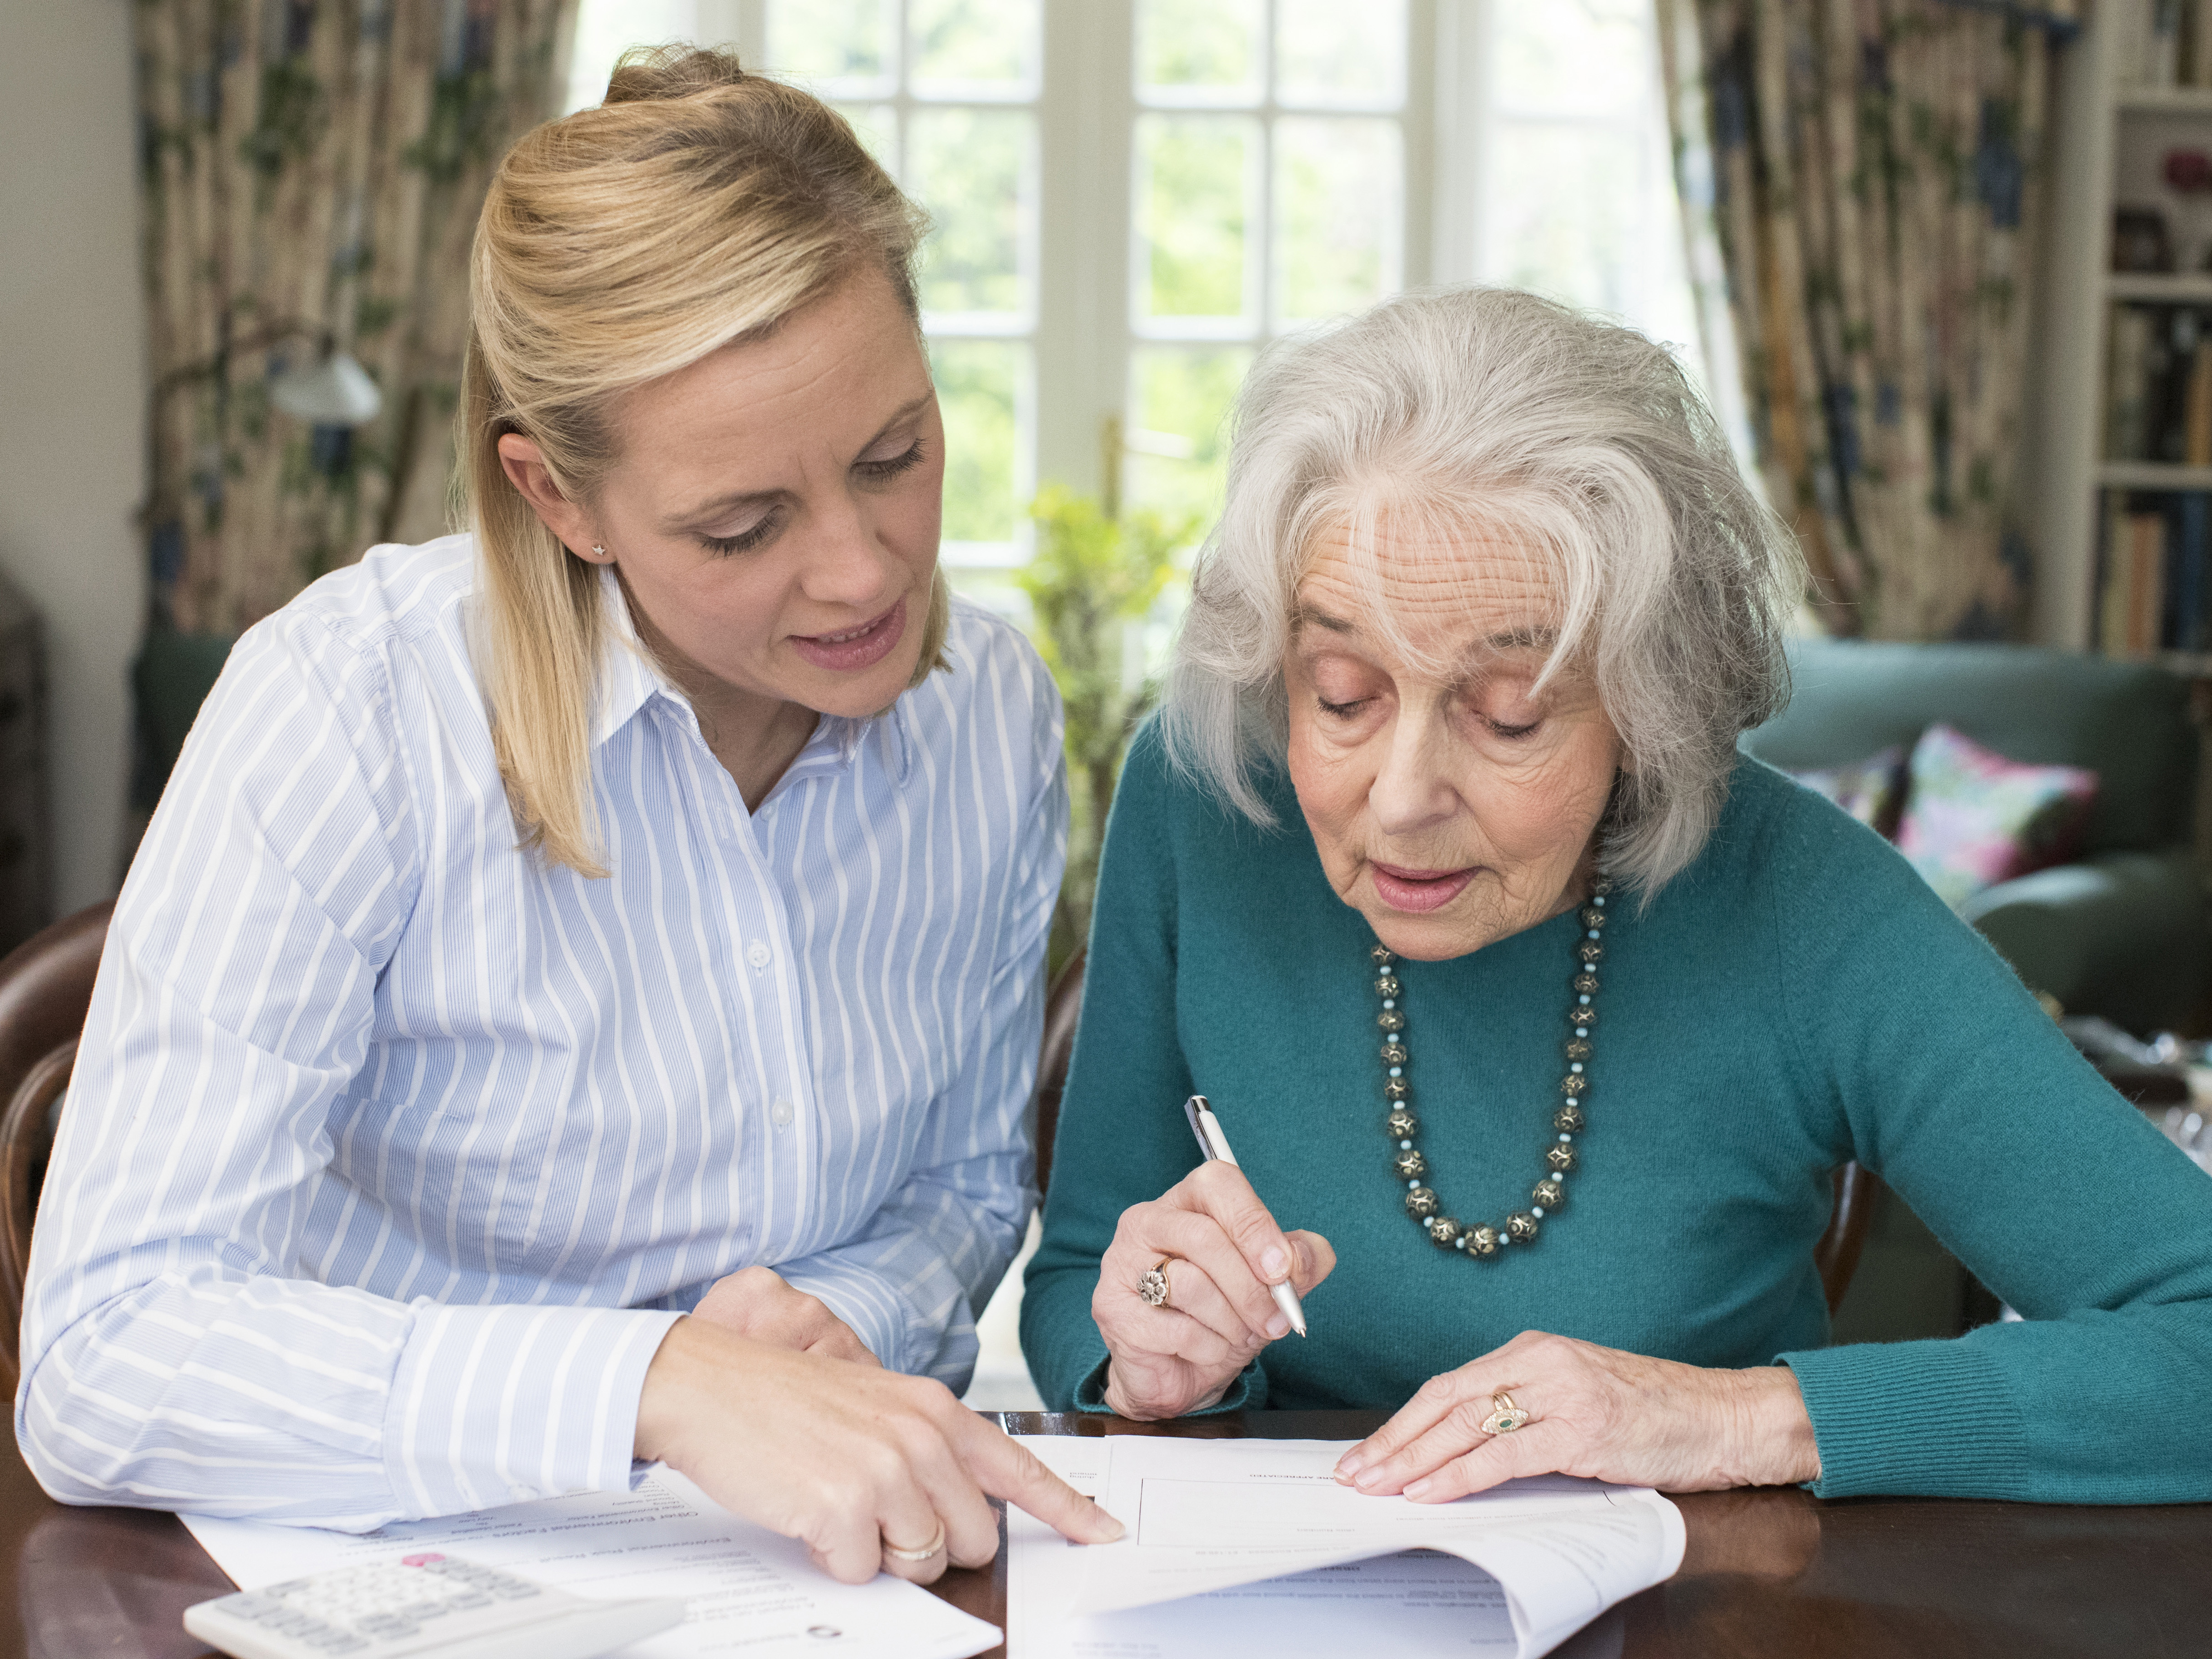 Woman helping older woman with her documents.